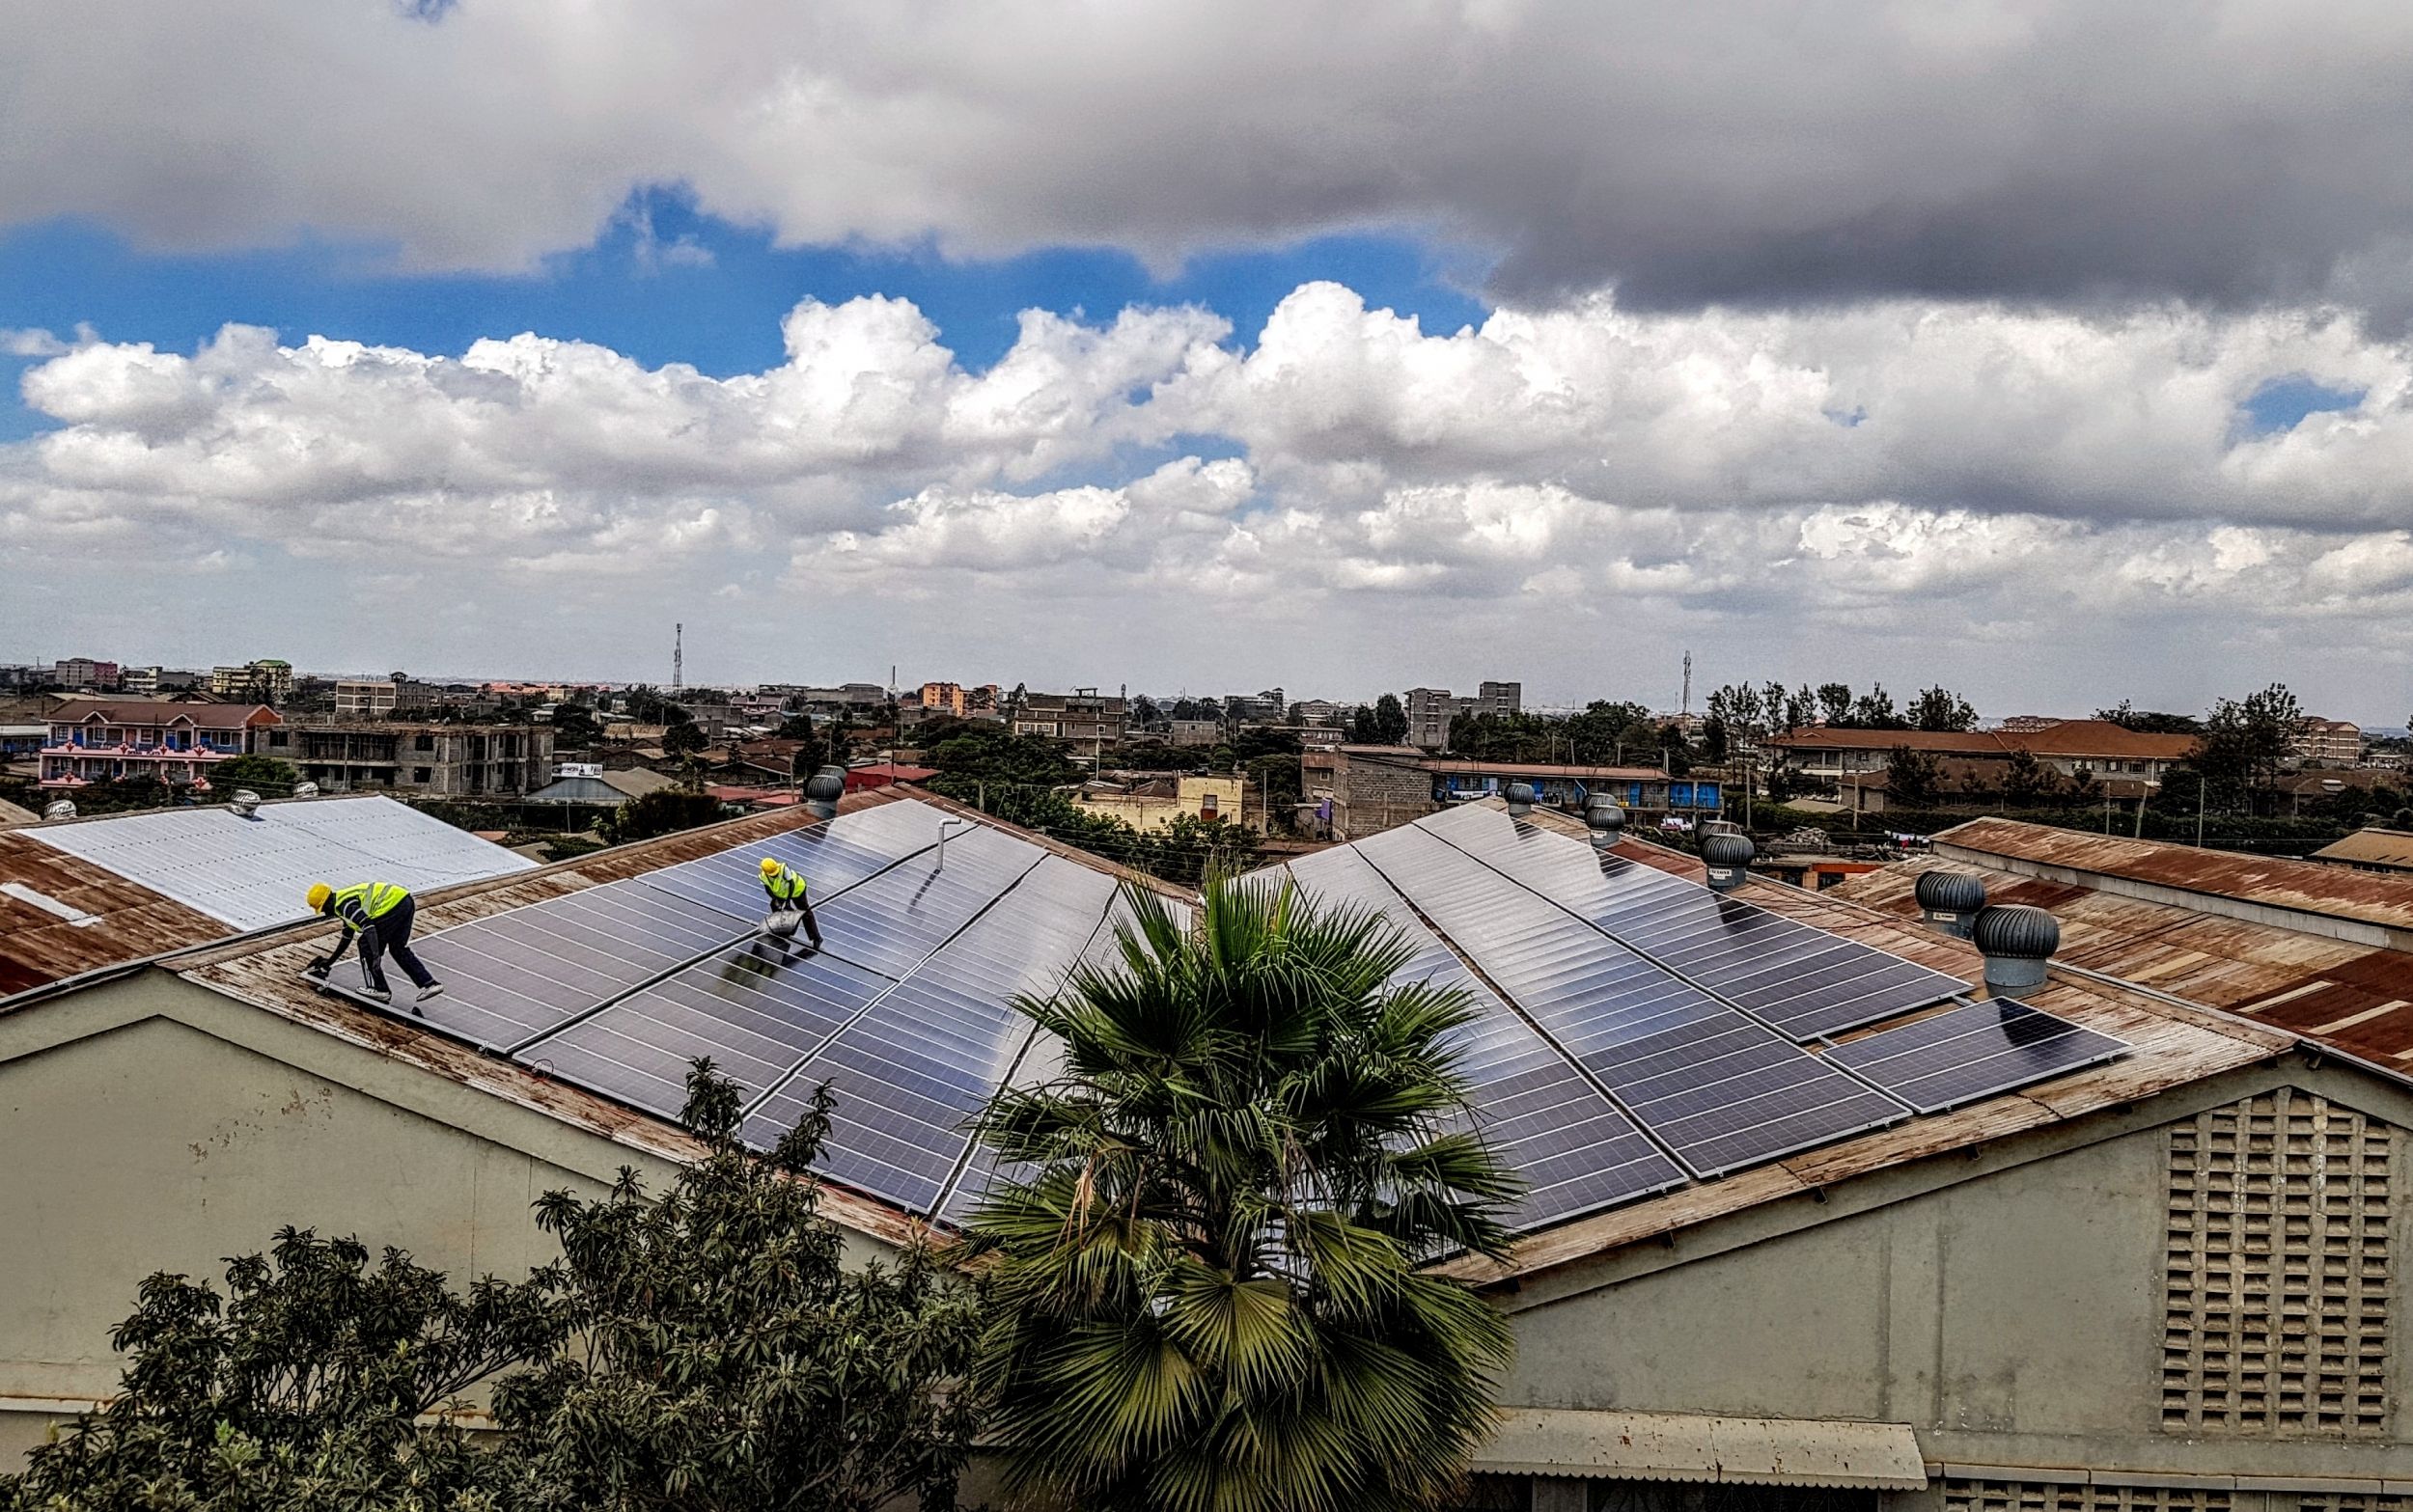 Kenya solar power generation requires BASEC quality cables across Africa